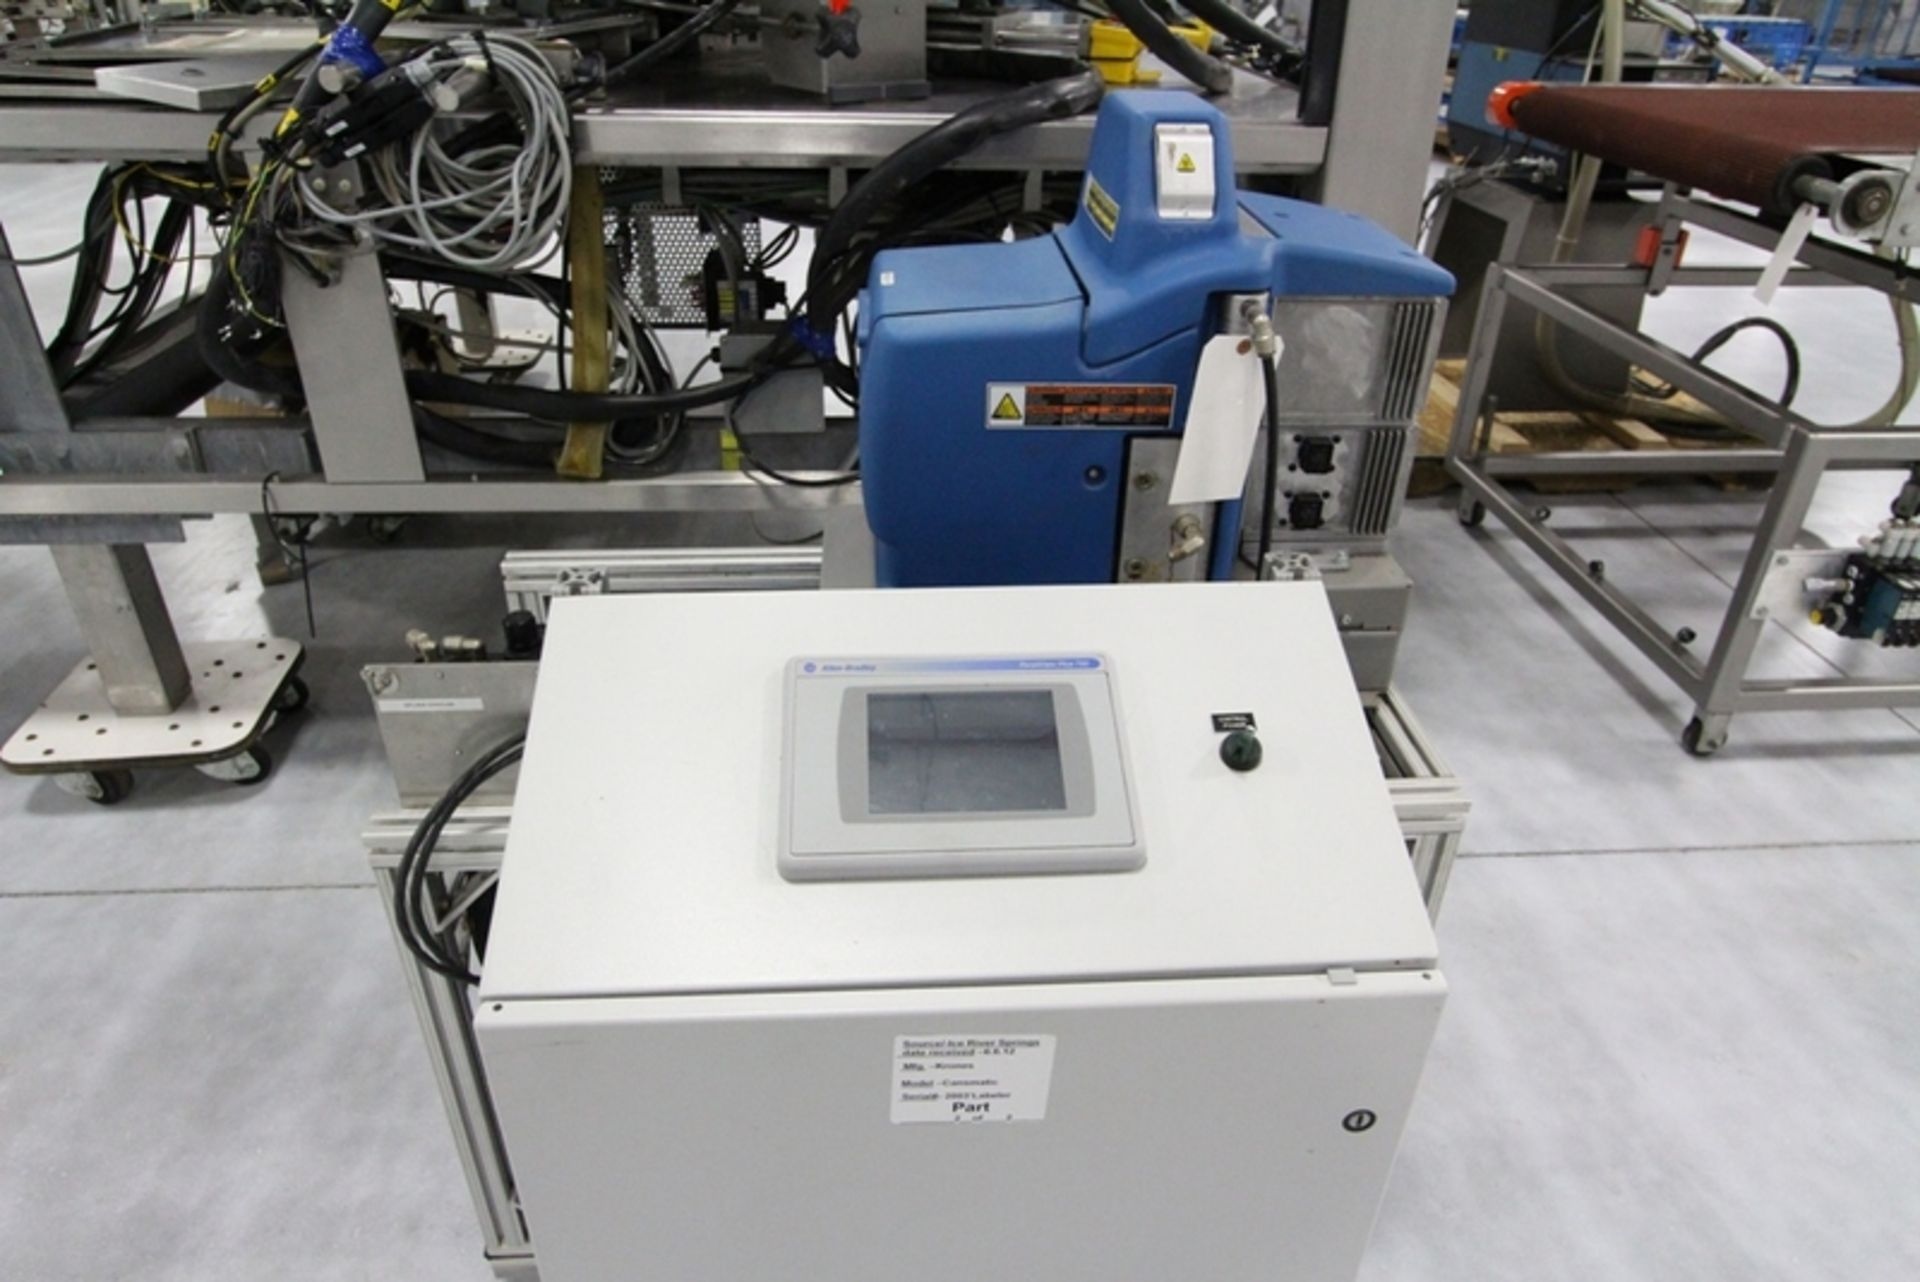 2003 Krones 18 Station Cut and Stack Labeler - Image 10 of 10